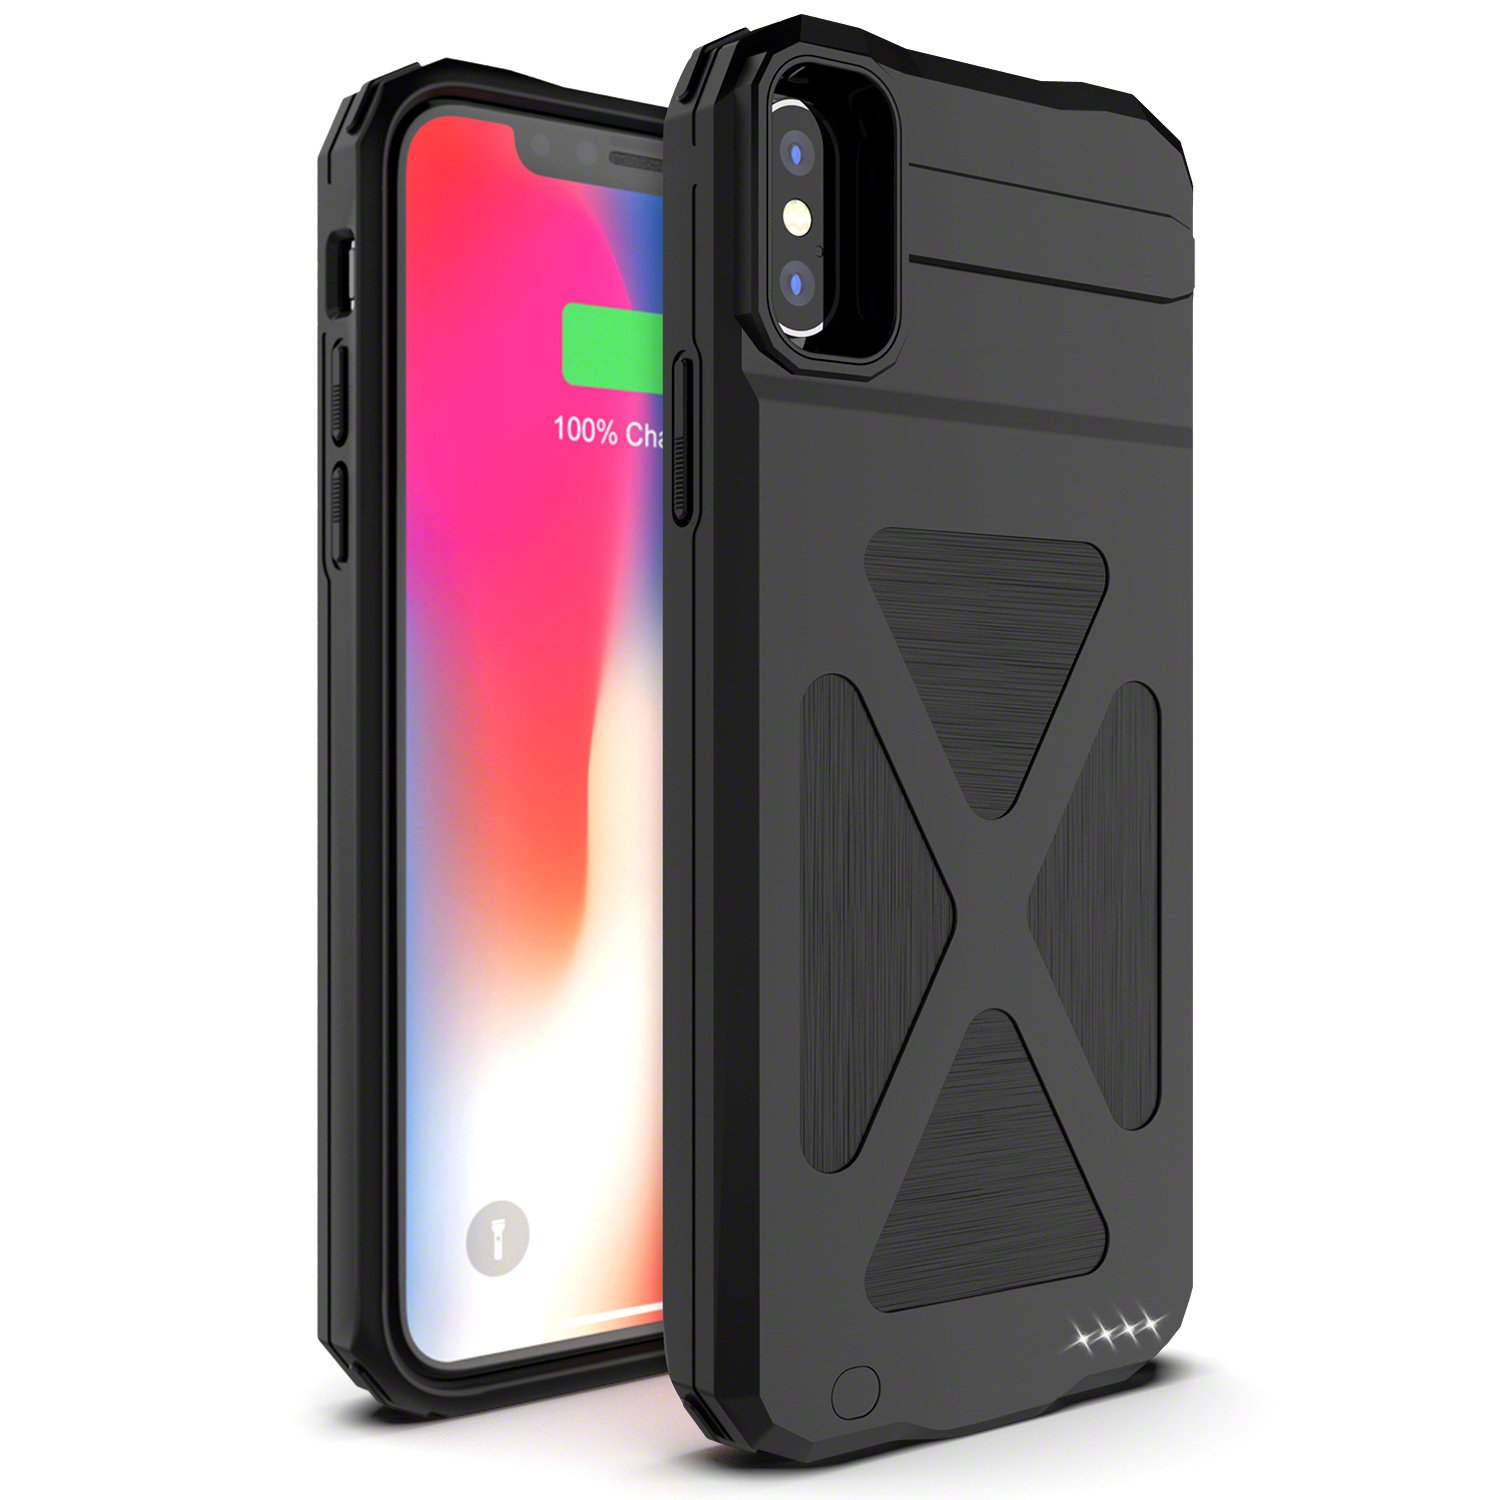 finest selection 6ba88 74cb1 iPhone X Battery Case, Smiphee 4000 mAh Portable Charging Case for ...